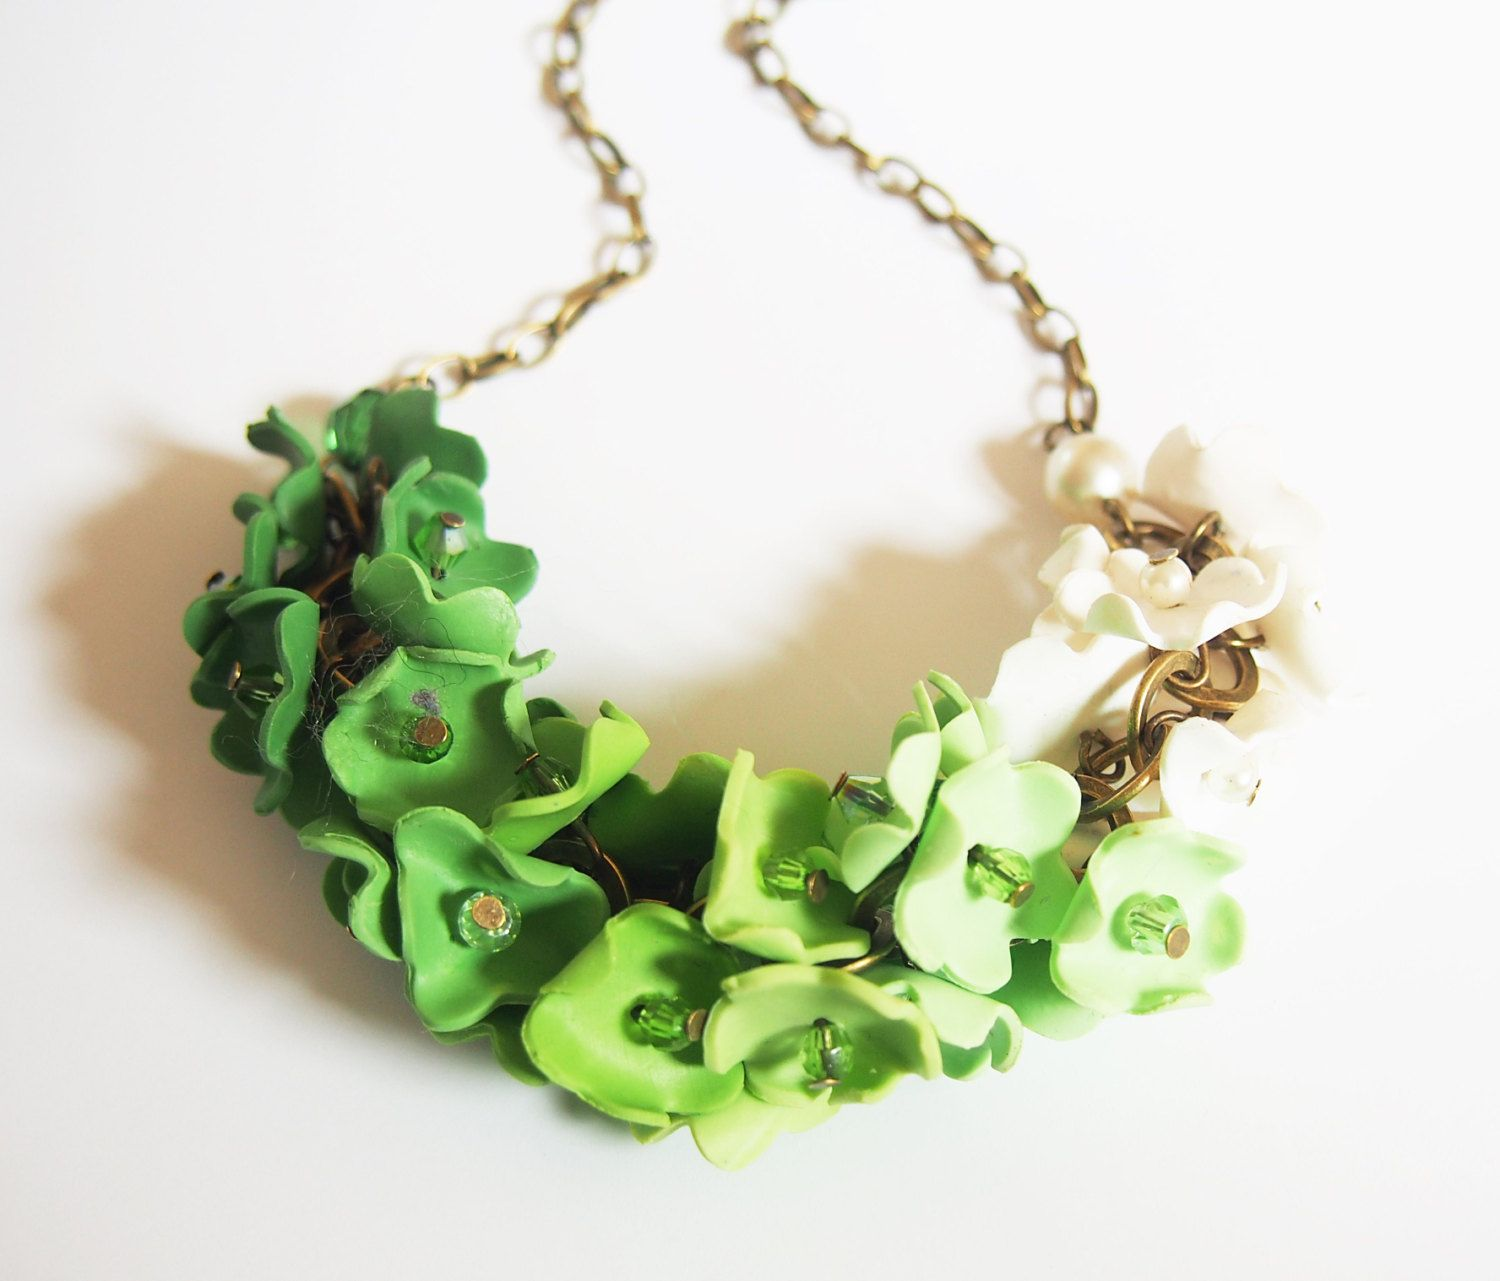 Green Necklace Flower Necklace ( ombre green ombre necklace bib necklace bridal jewelry floral jewelry polymer clay jewelry floral necklace) (36.00 GBP) by BrightFloralJewelry